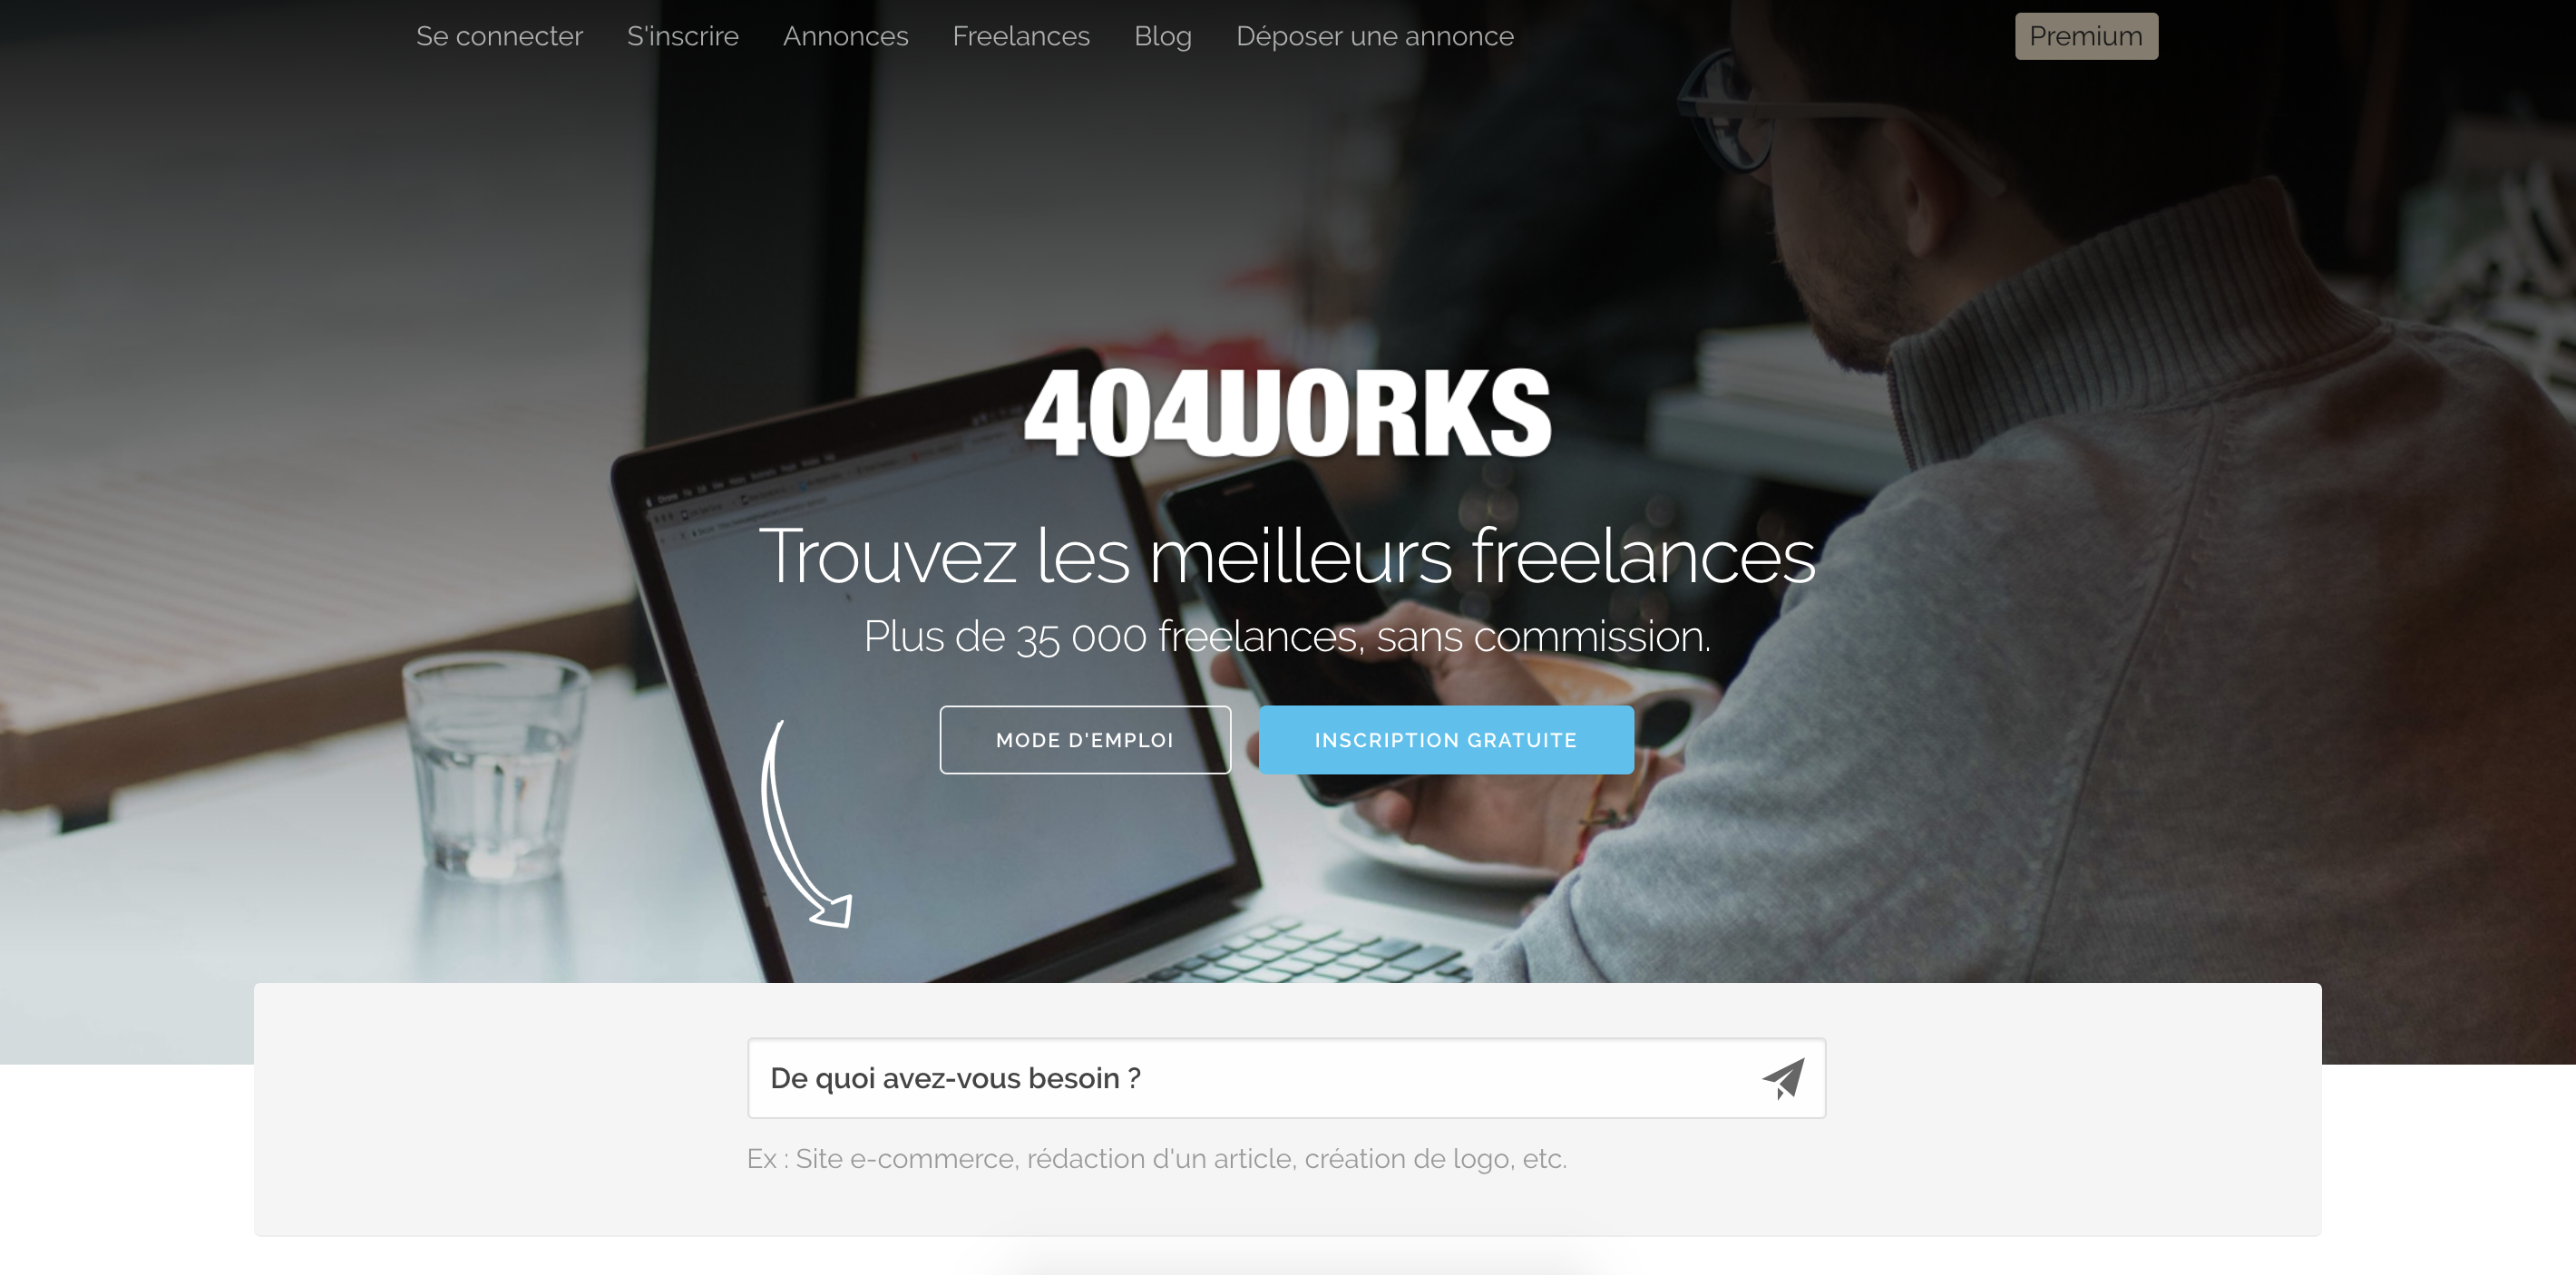 404works-plateforme-freelance